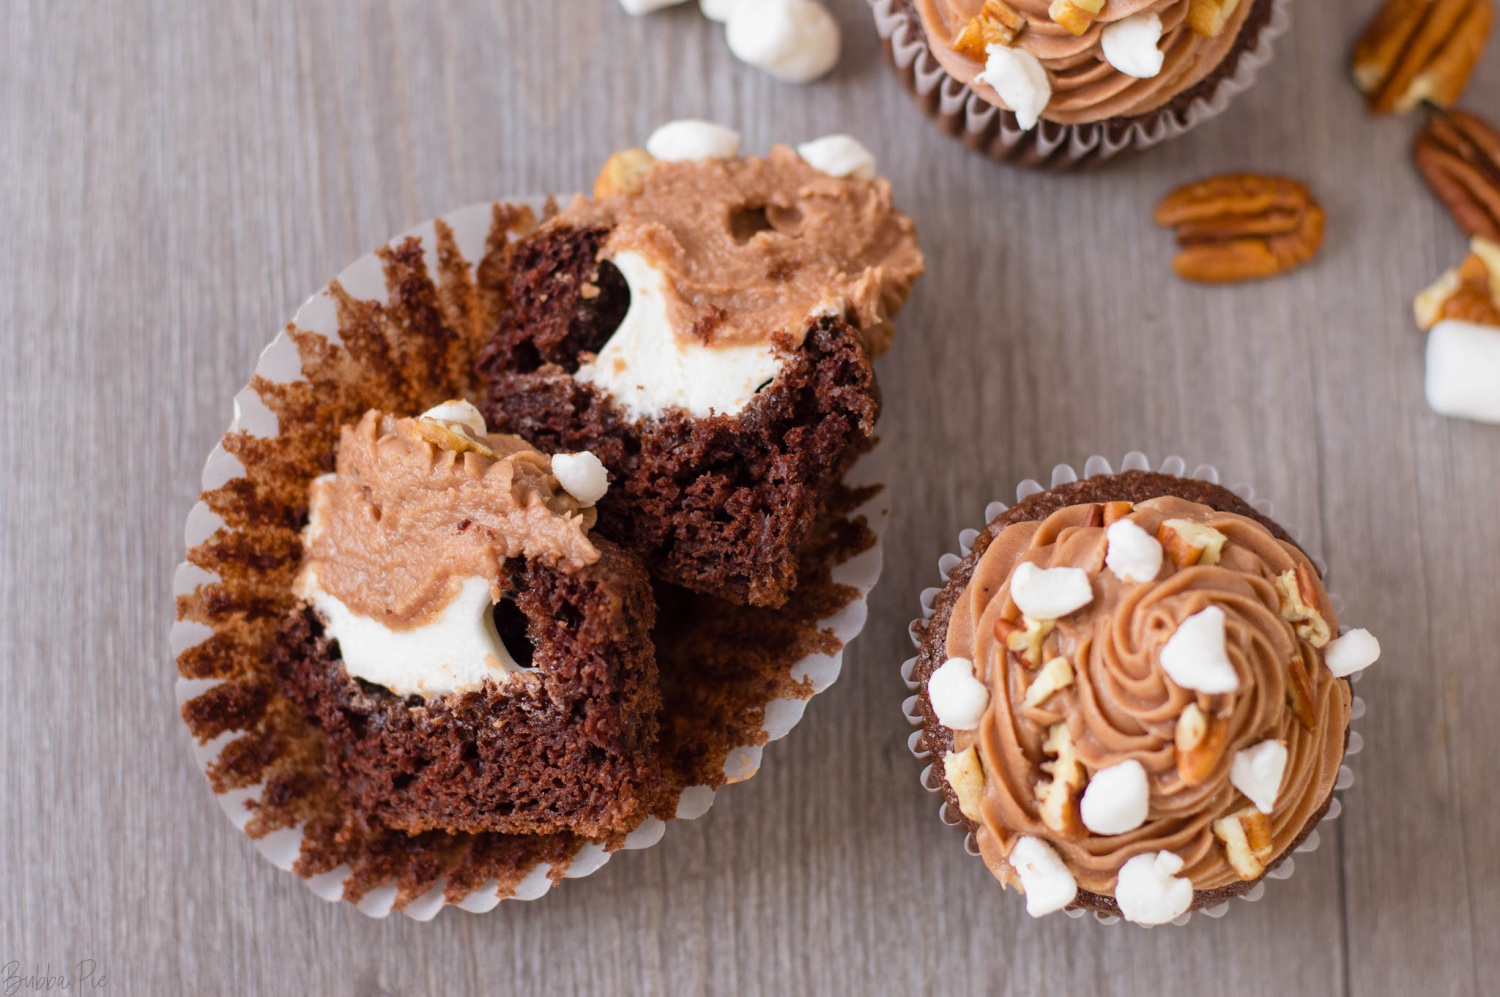 Rocky Road Cupcakes Recipe with a gooey marshmallow center.